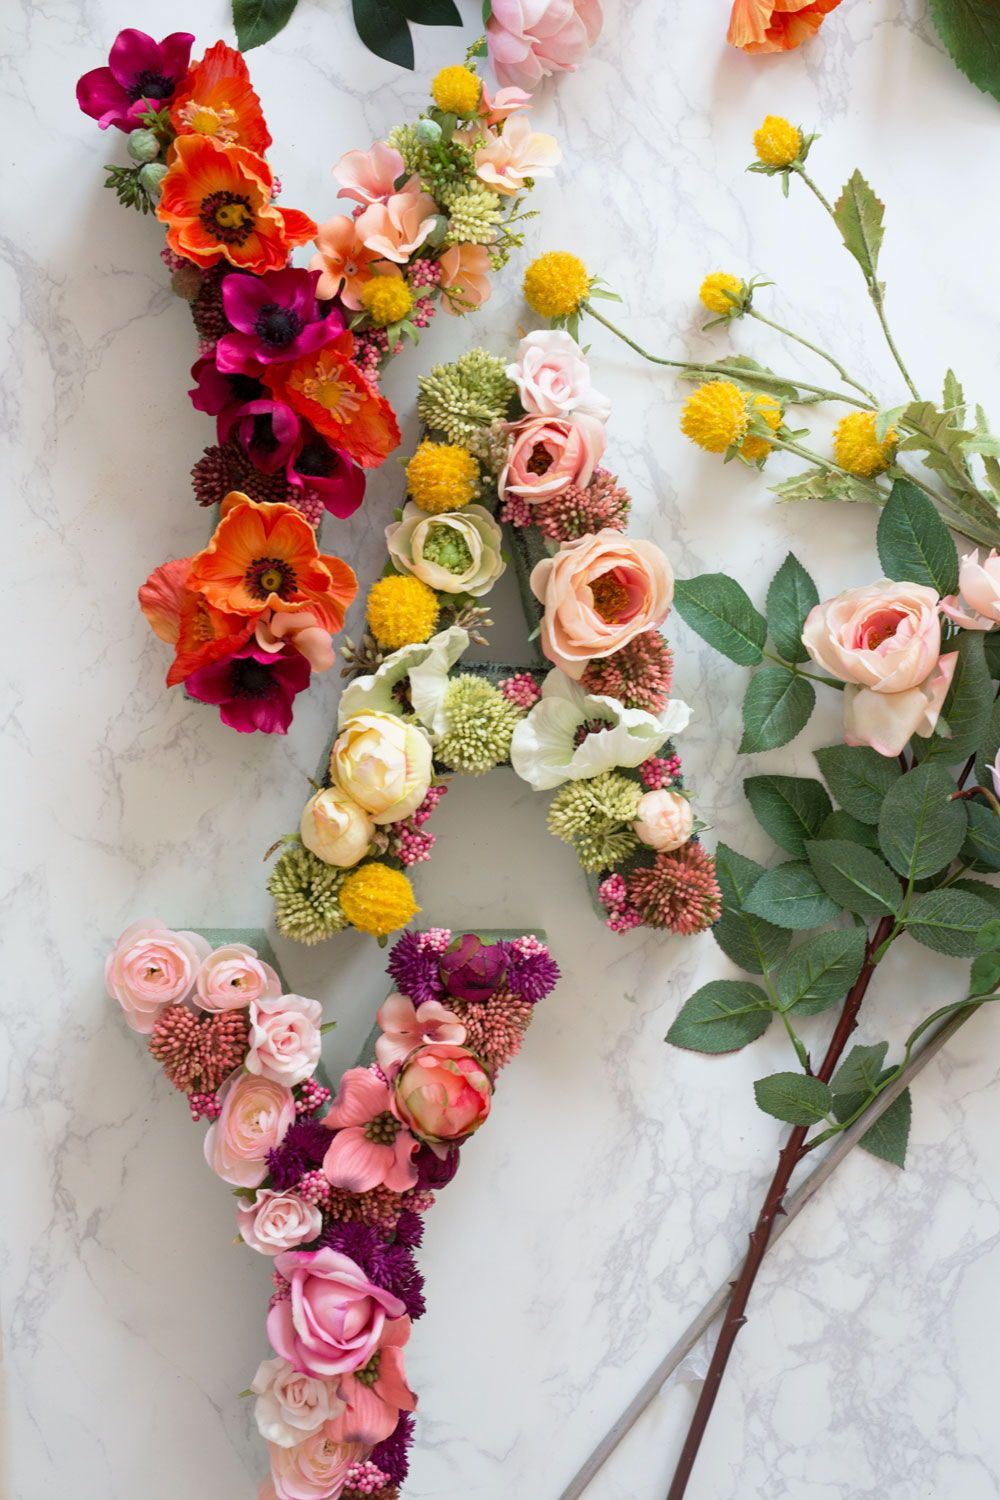 How To Floral Letter Floral Letters Flower Letters